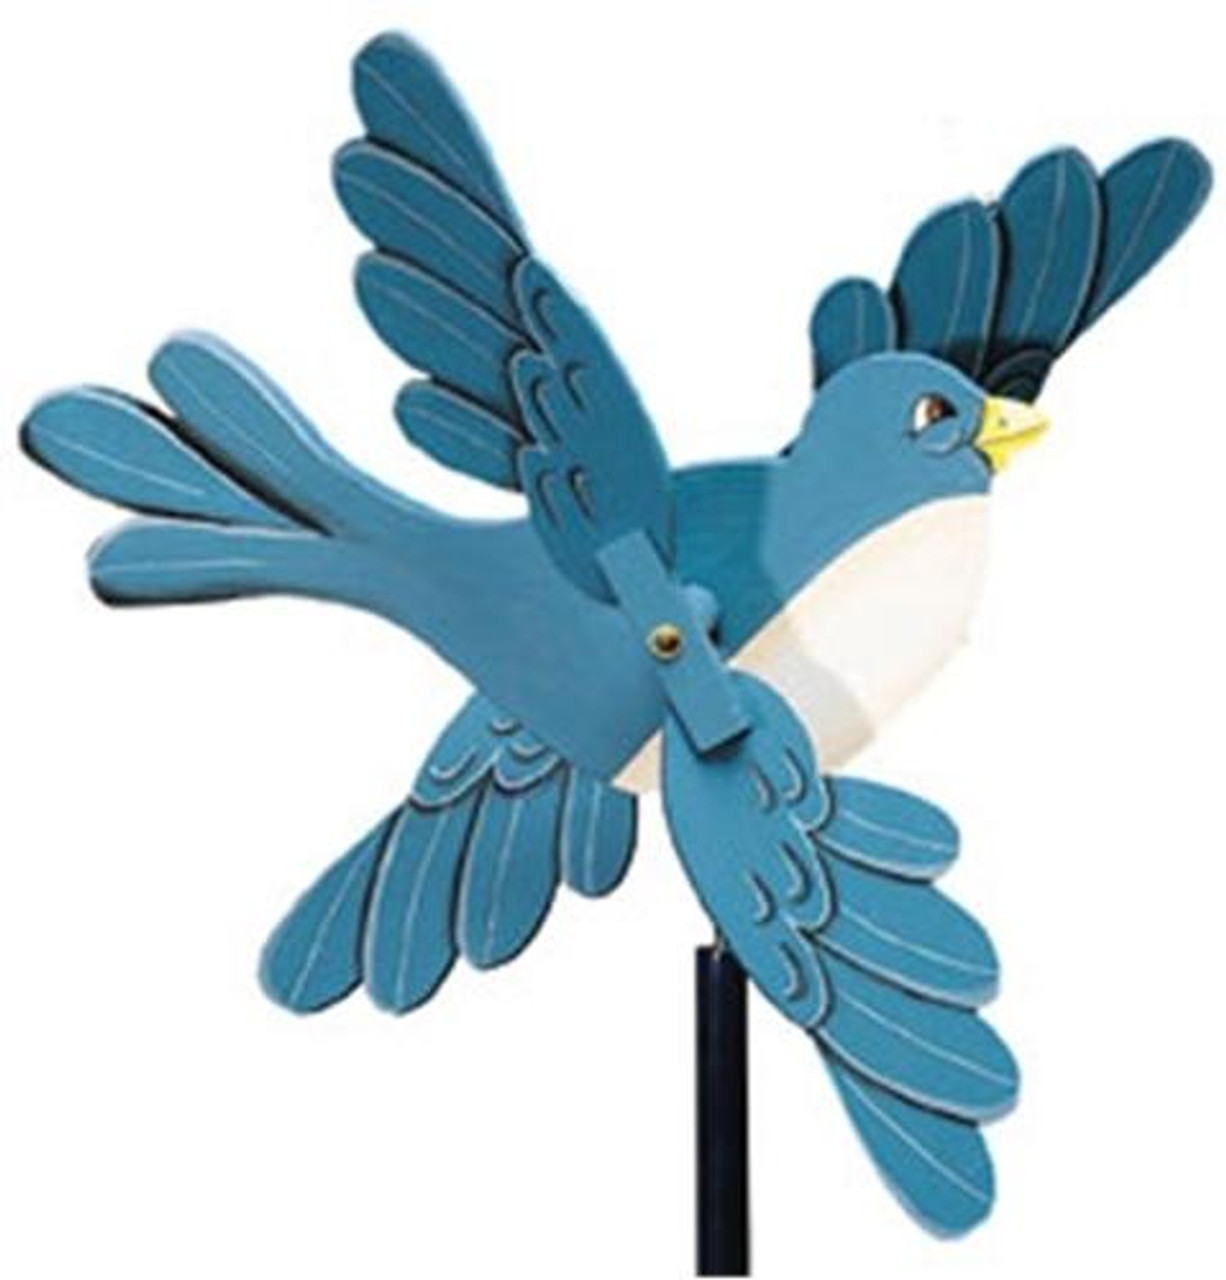 Cherry Tree Toys Bluebird w/Scalloped Wings Whirligig Parts Kit